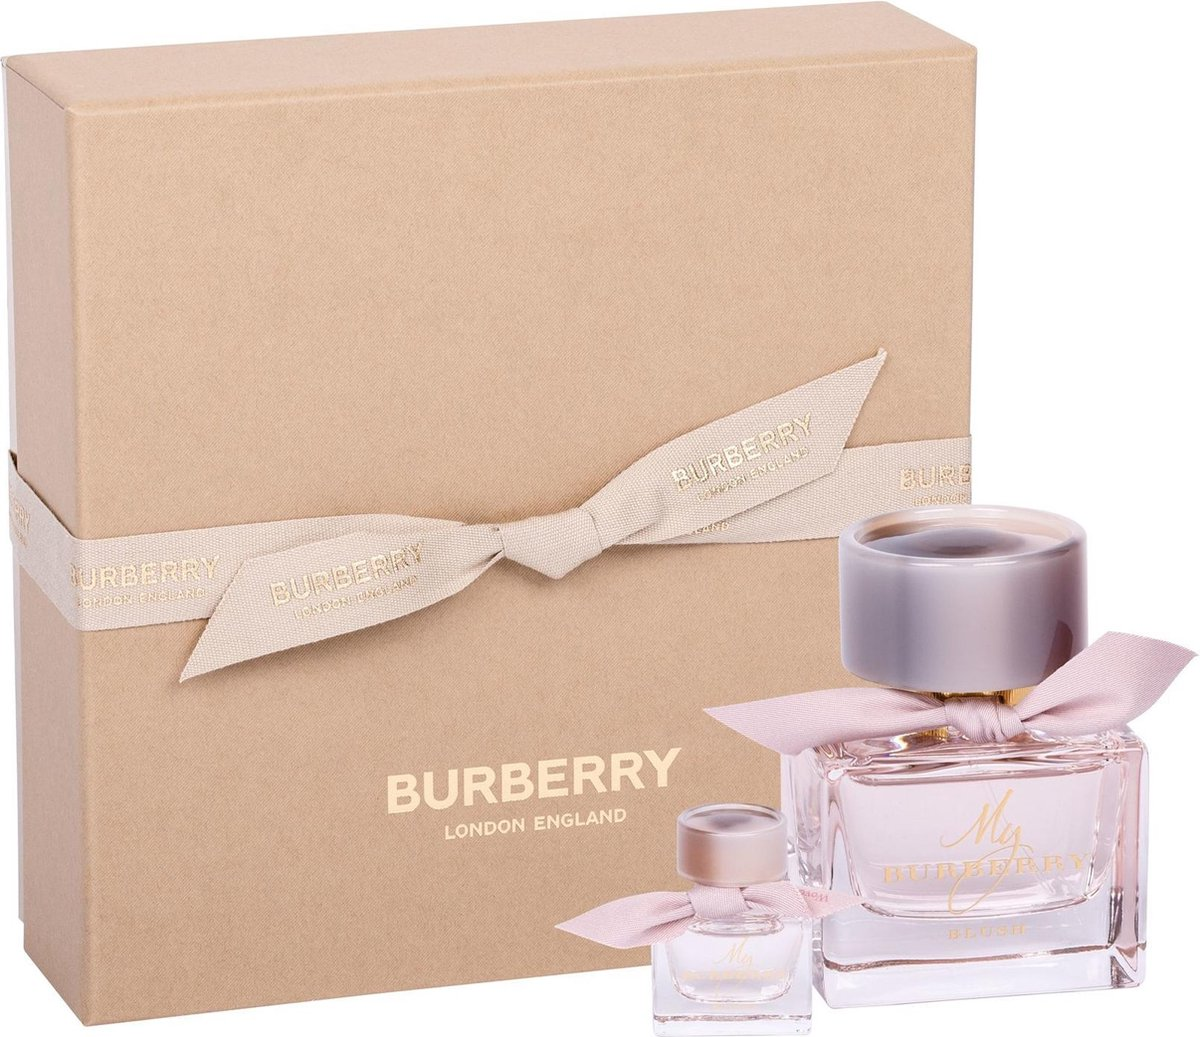 Burberry My Burberry Blush 50ml Eau De Parfum